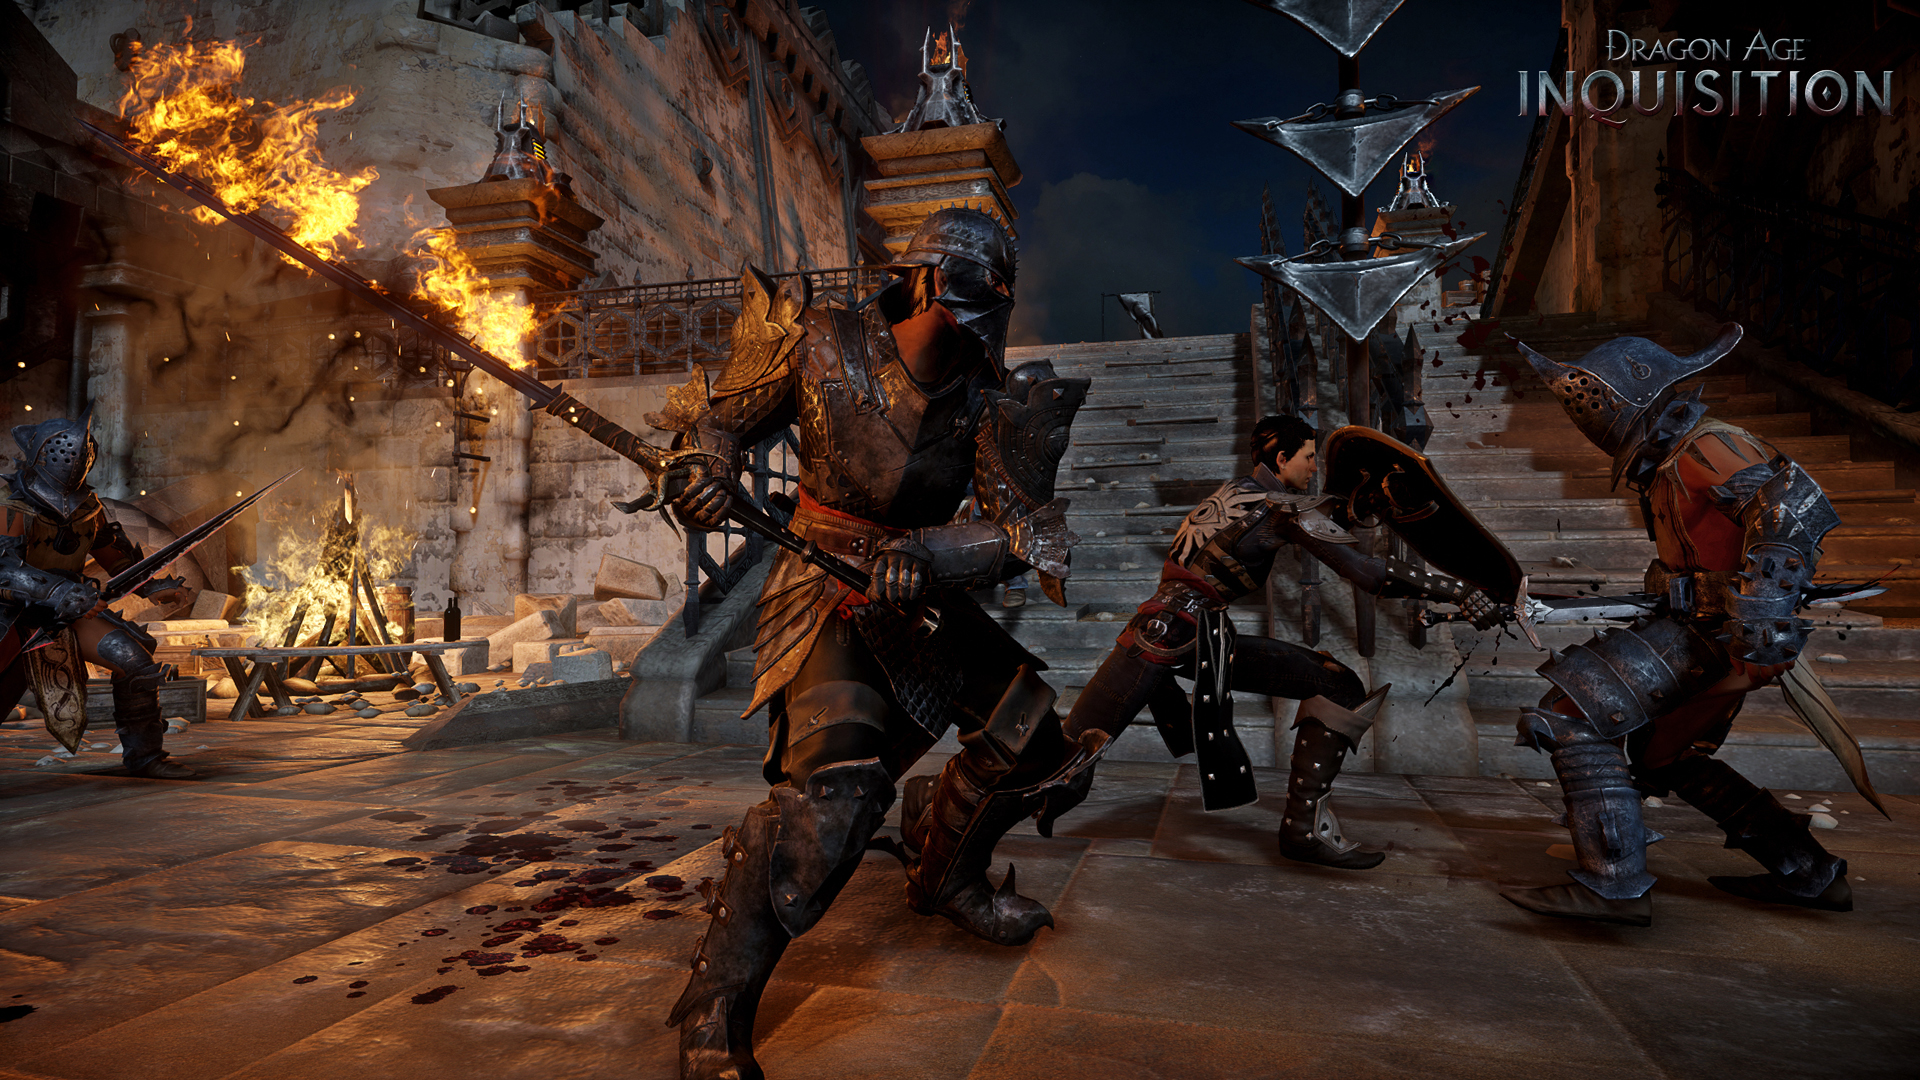 Dragon Age: Inquisition gets a haunting launch trailer